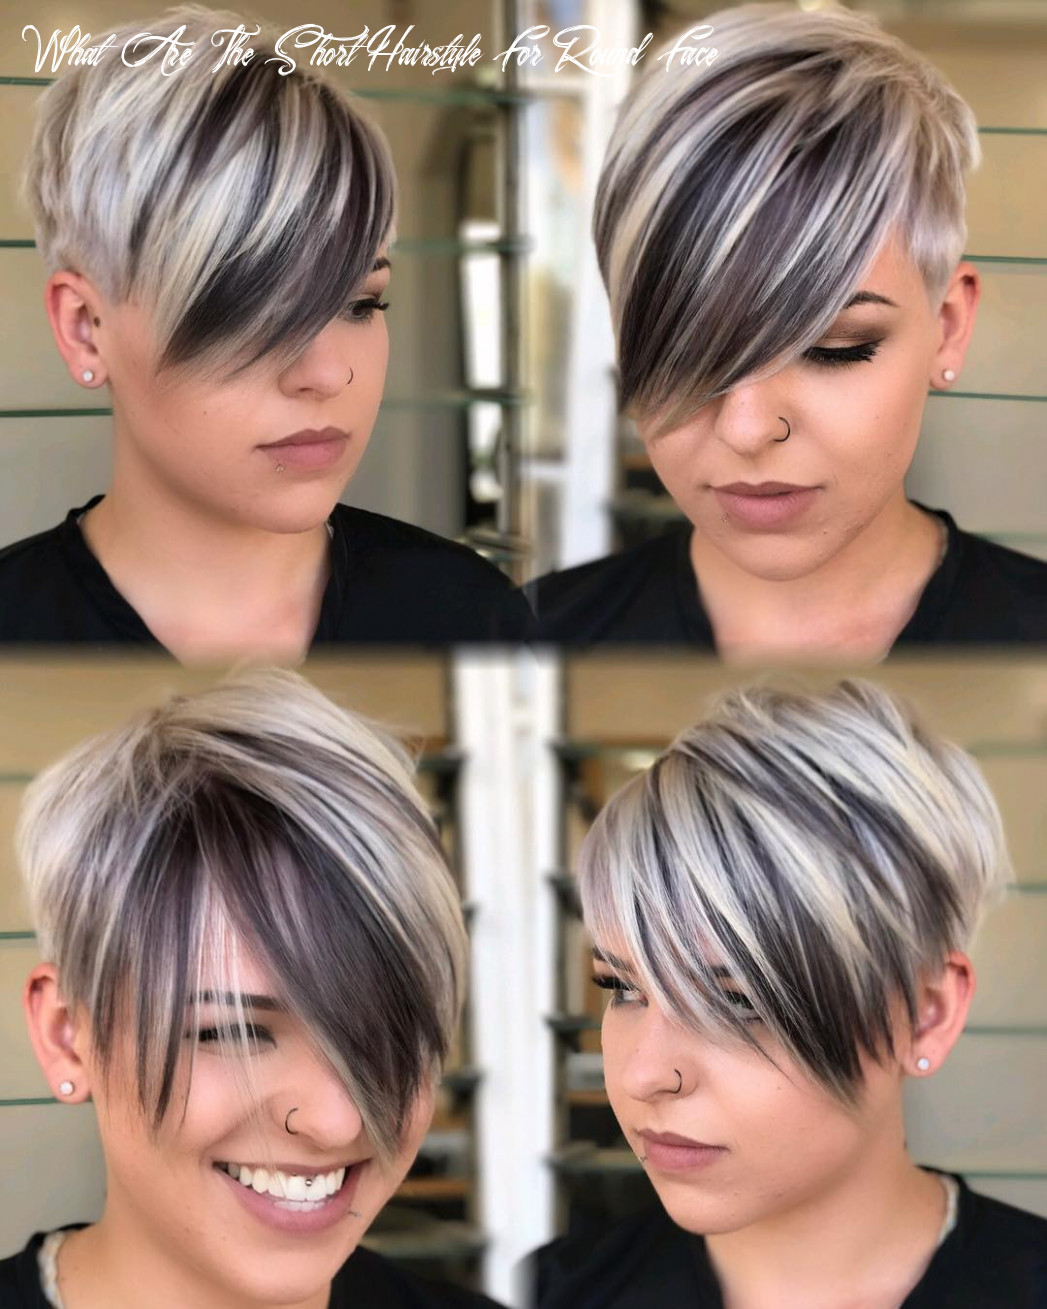 8 short hairstyles for round faces with slimming effect hadviser what are the short hairstyle for round face